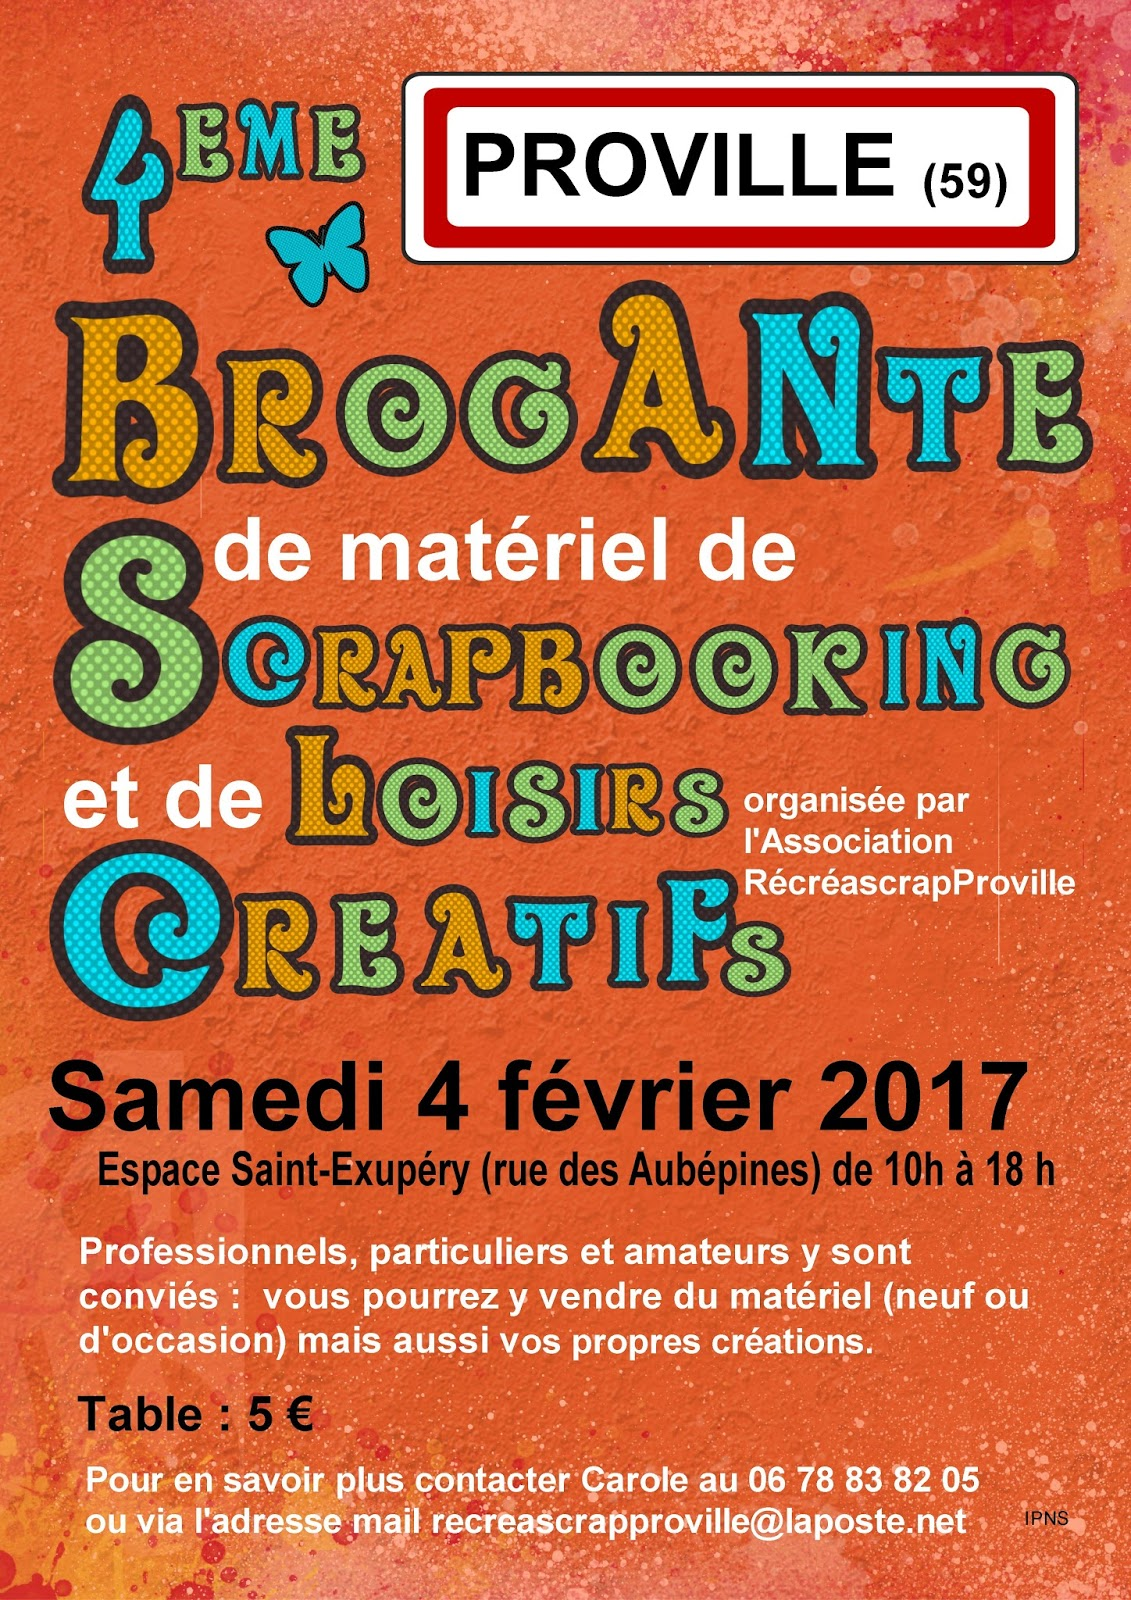 art avenue salon de scrapbooking proville